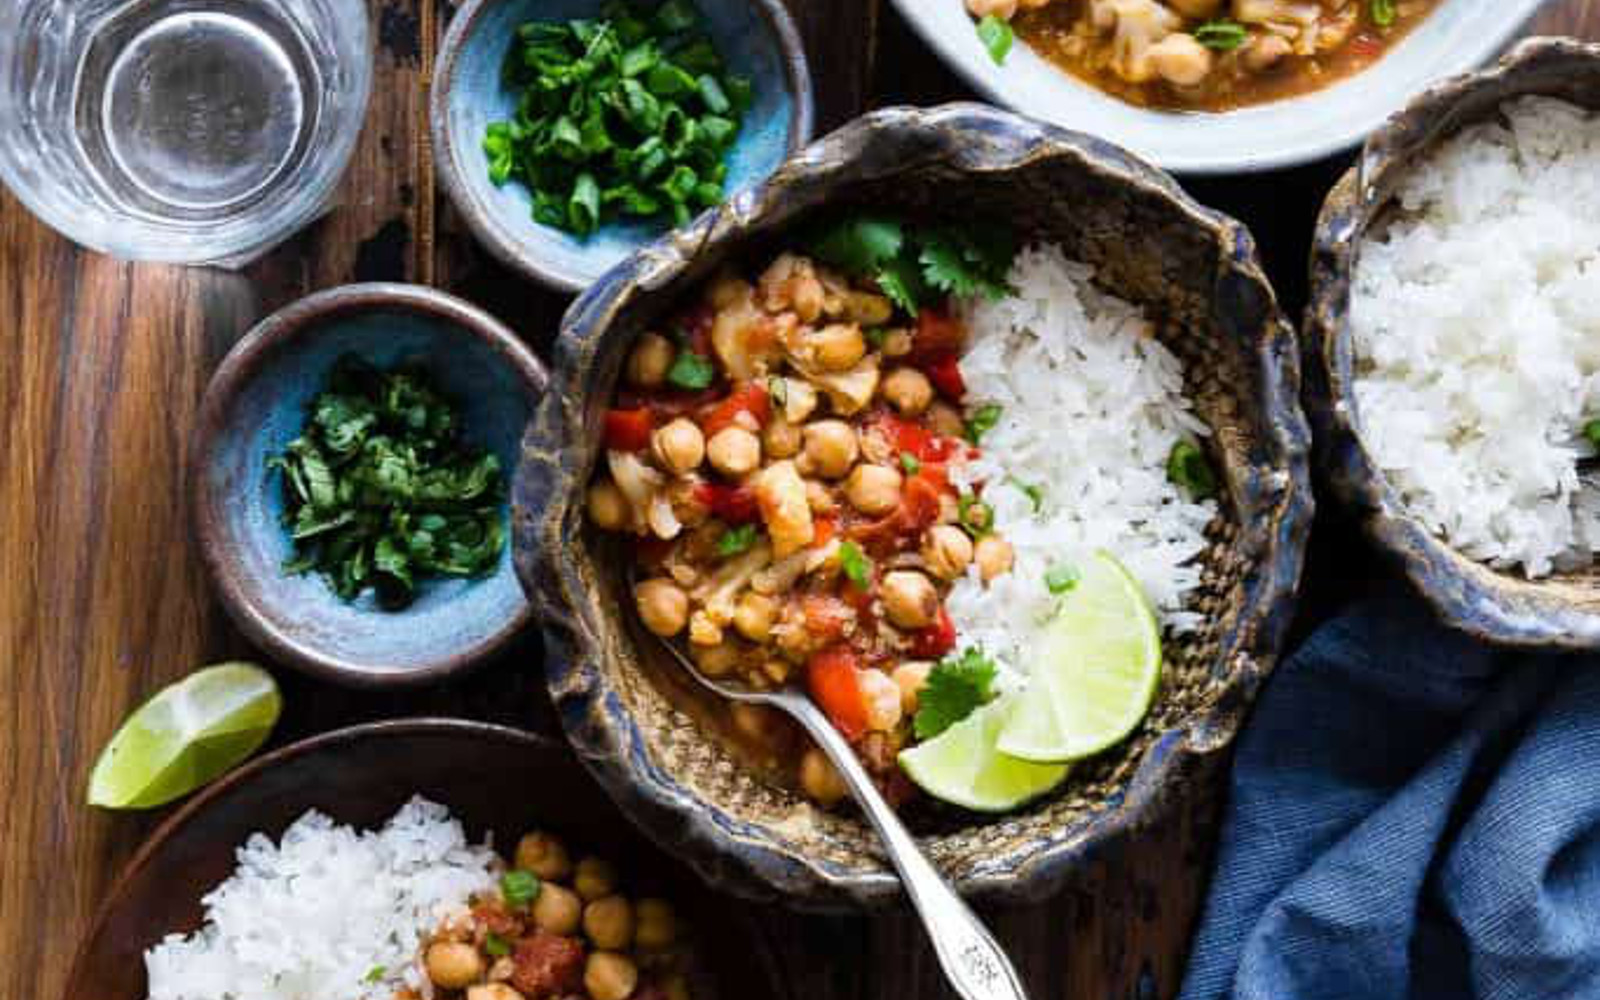 Vegan Gluten-Free Easy Cauliflower Chickpea Curry with a side of rice